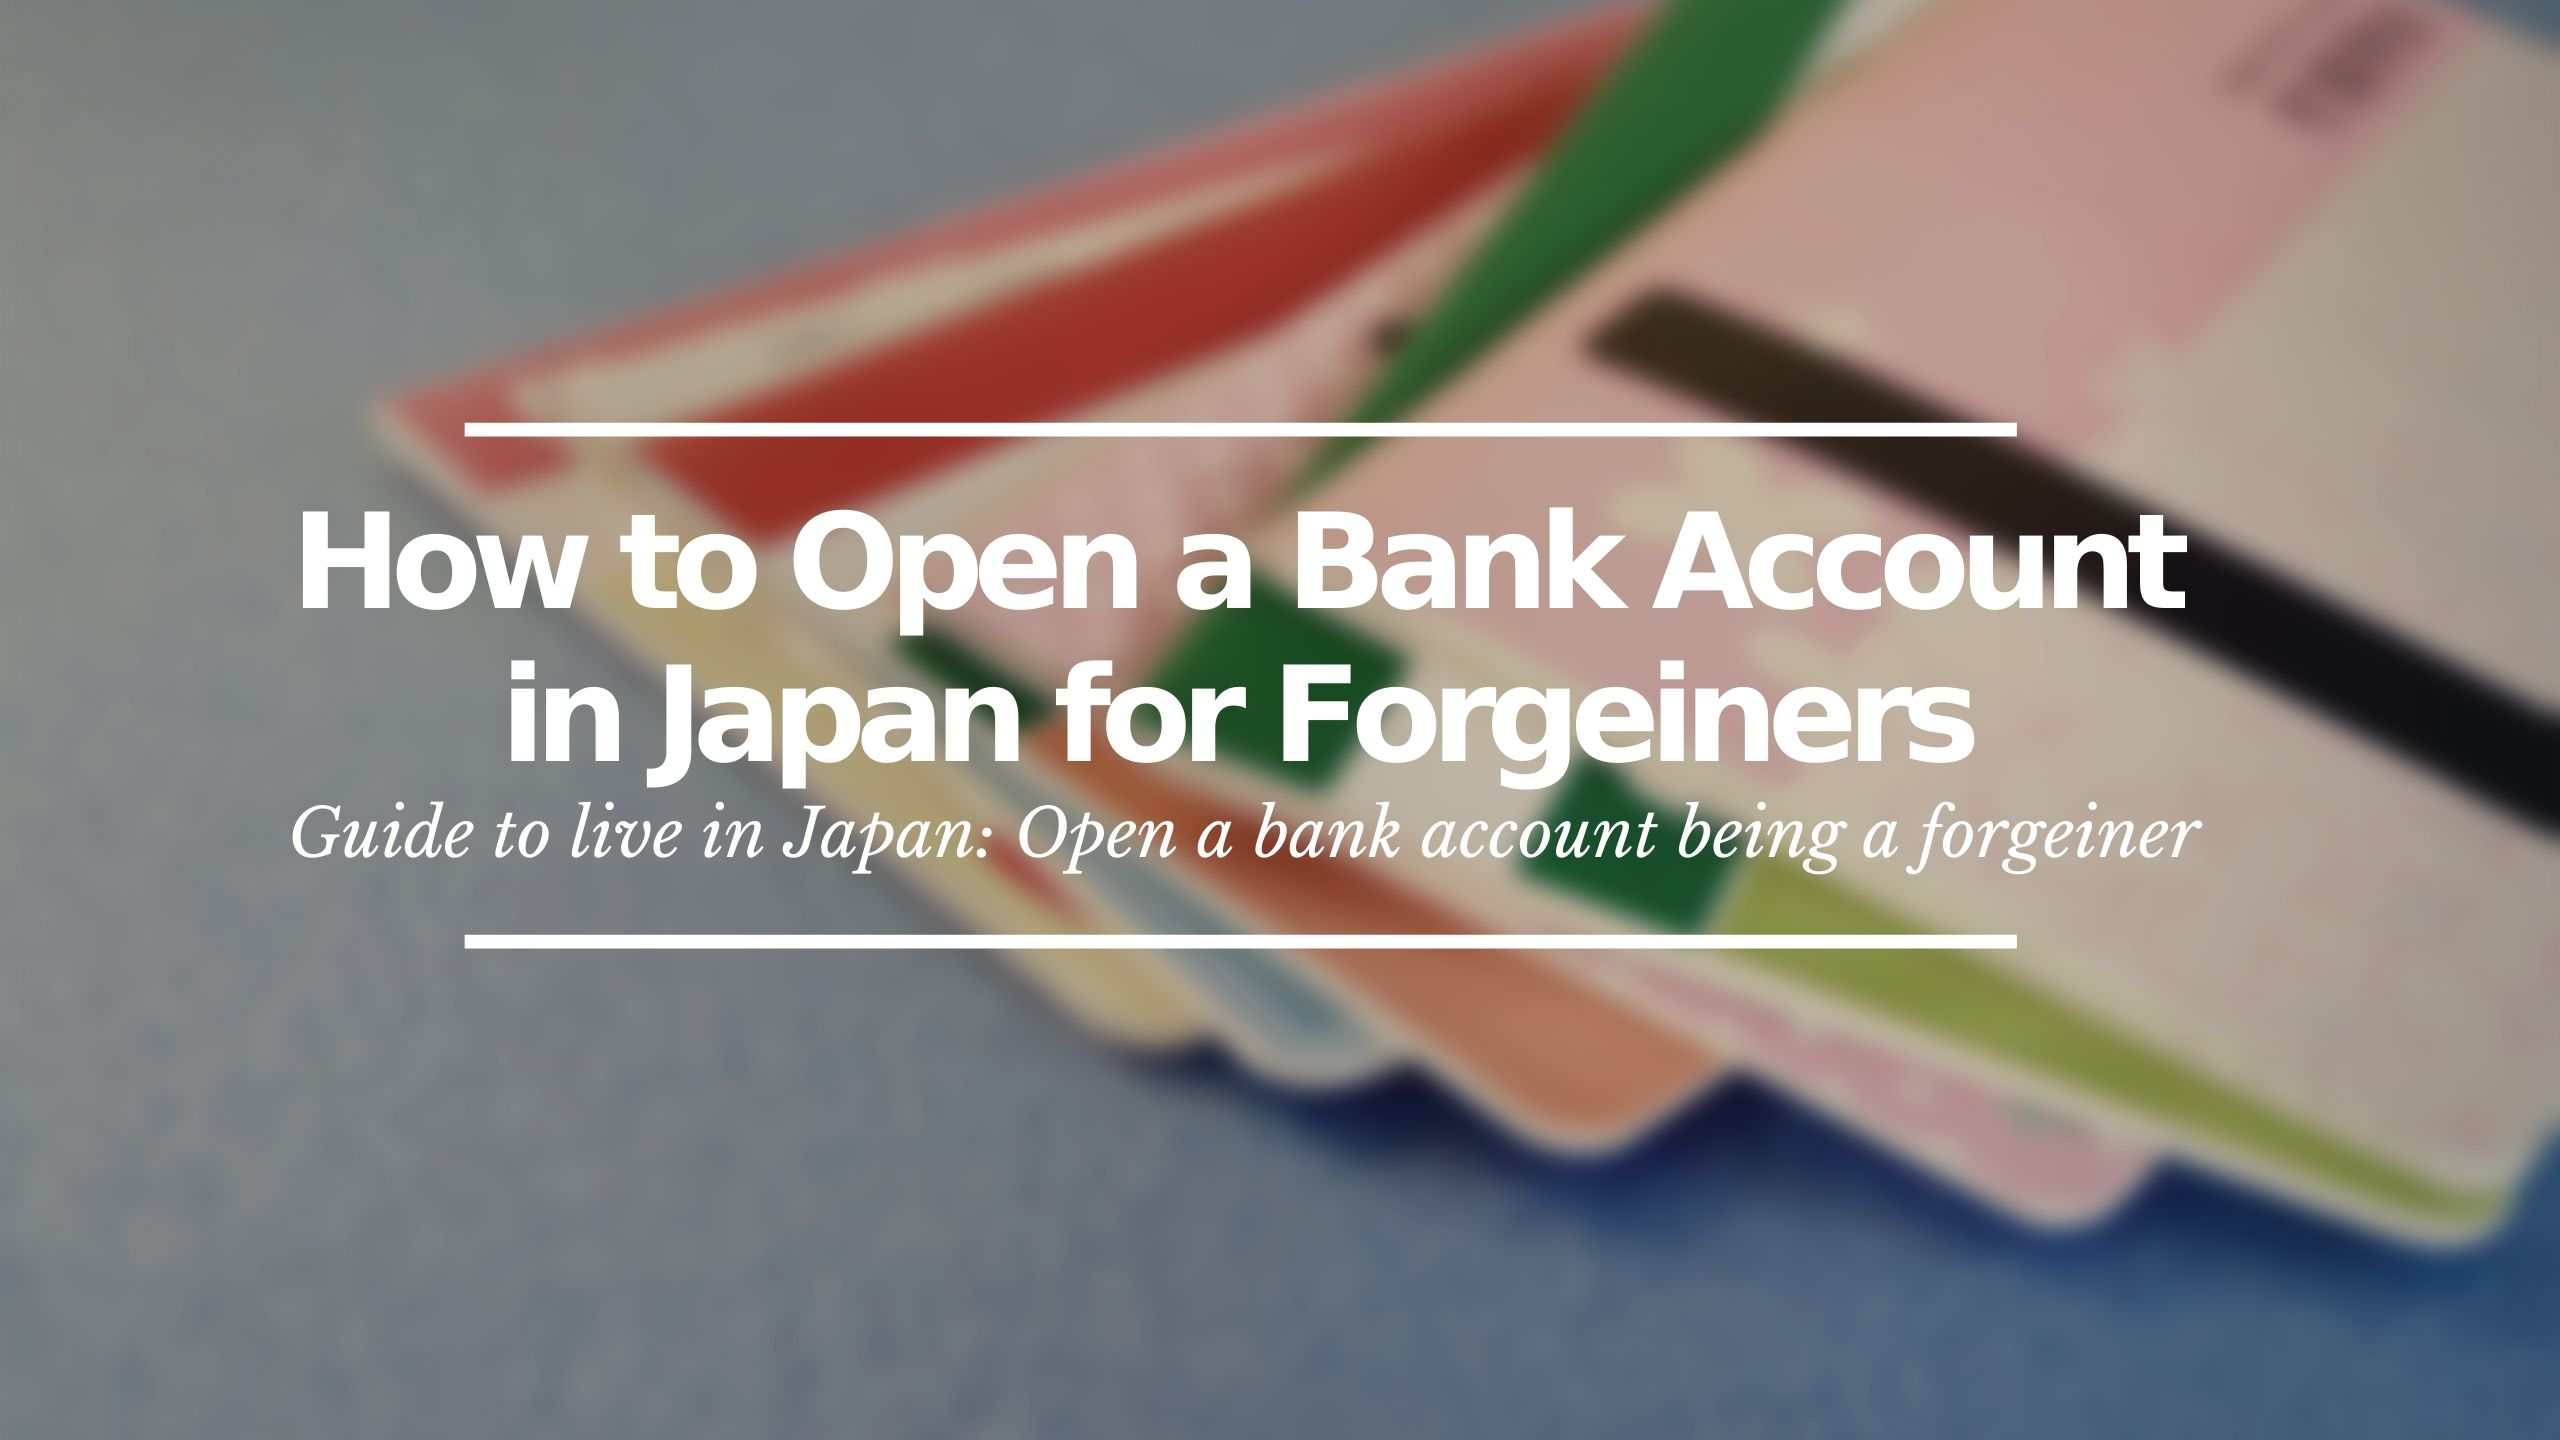 Open a Bank Account in Japan